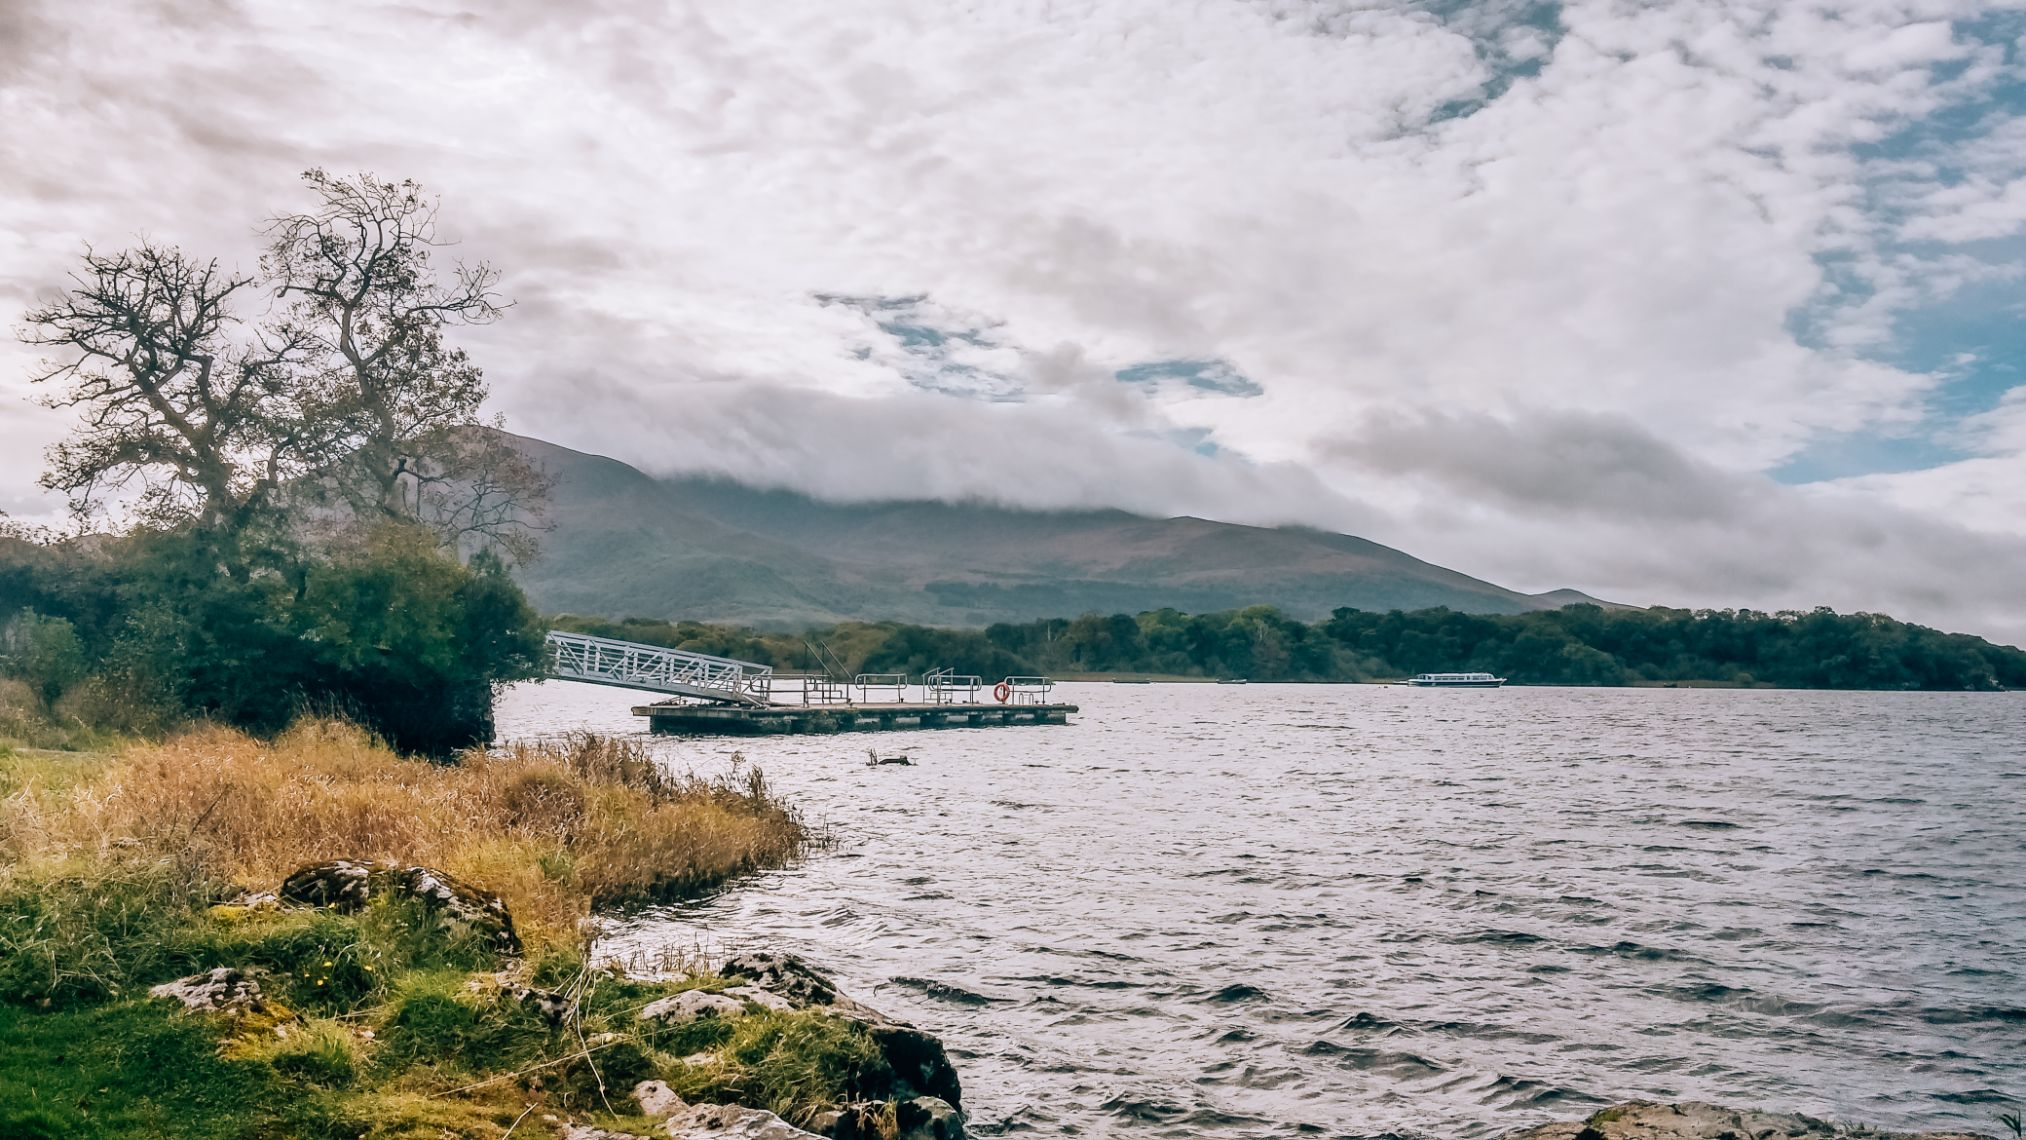 Lake at Killarney National Park Ireland with mountains in the background